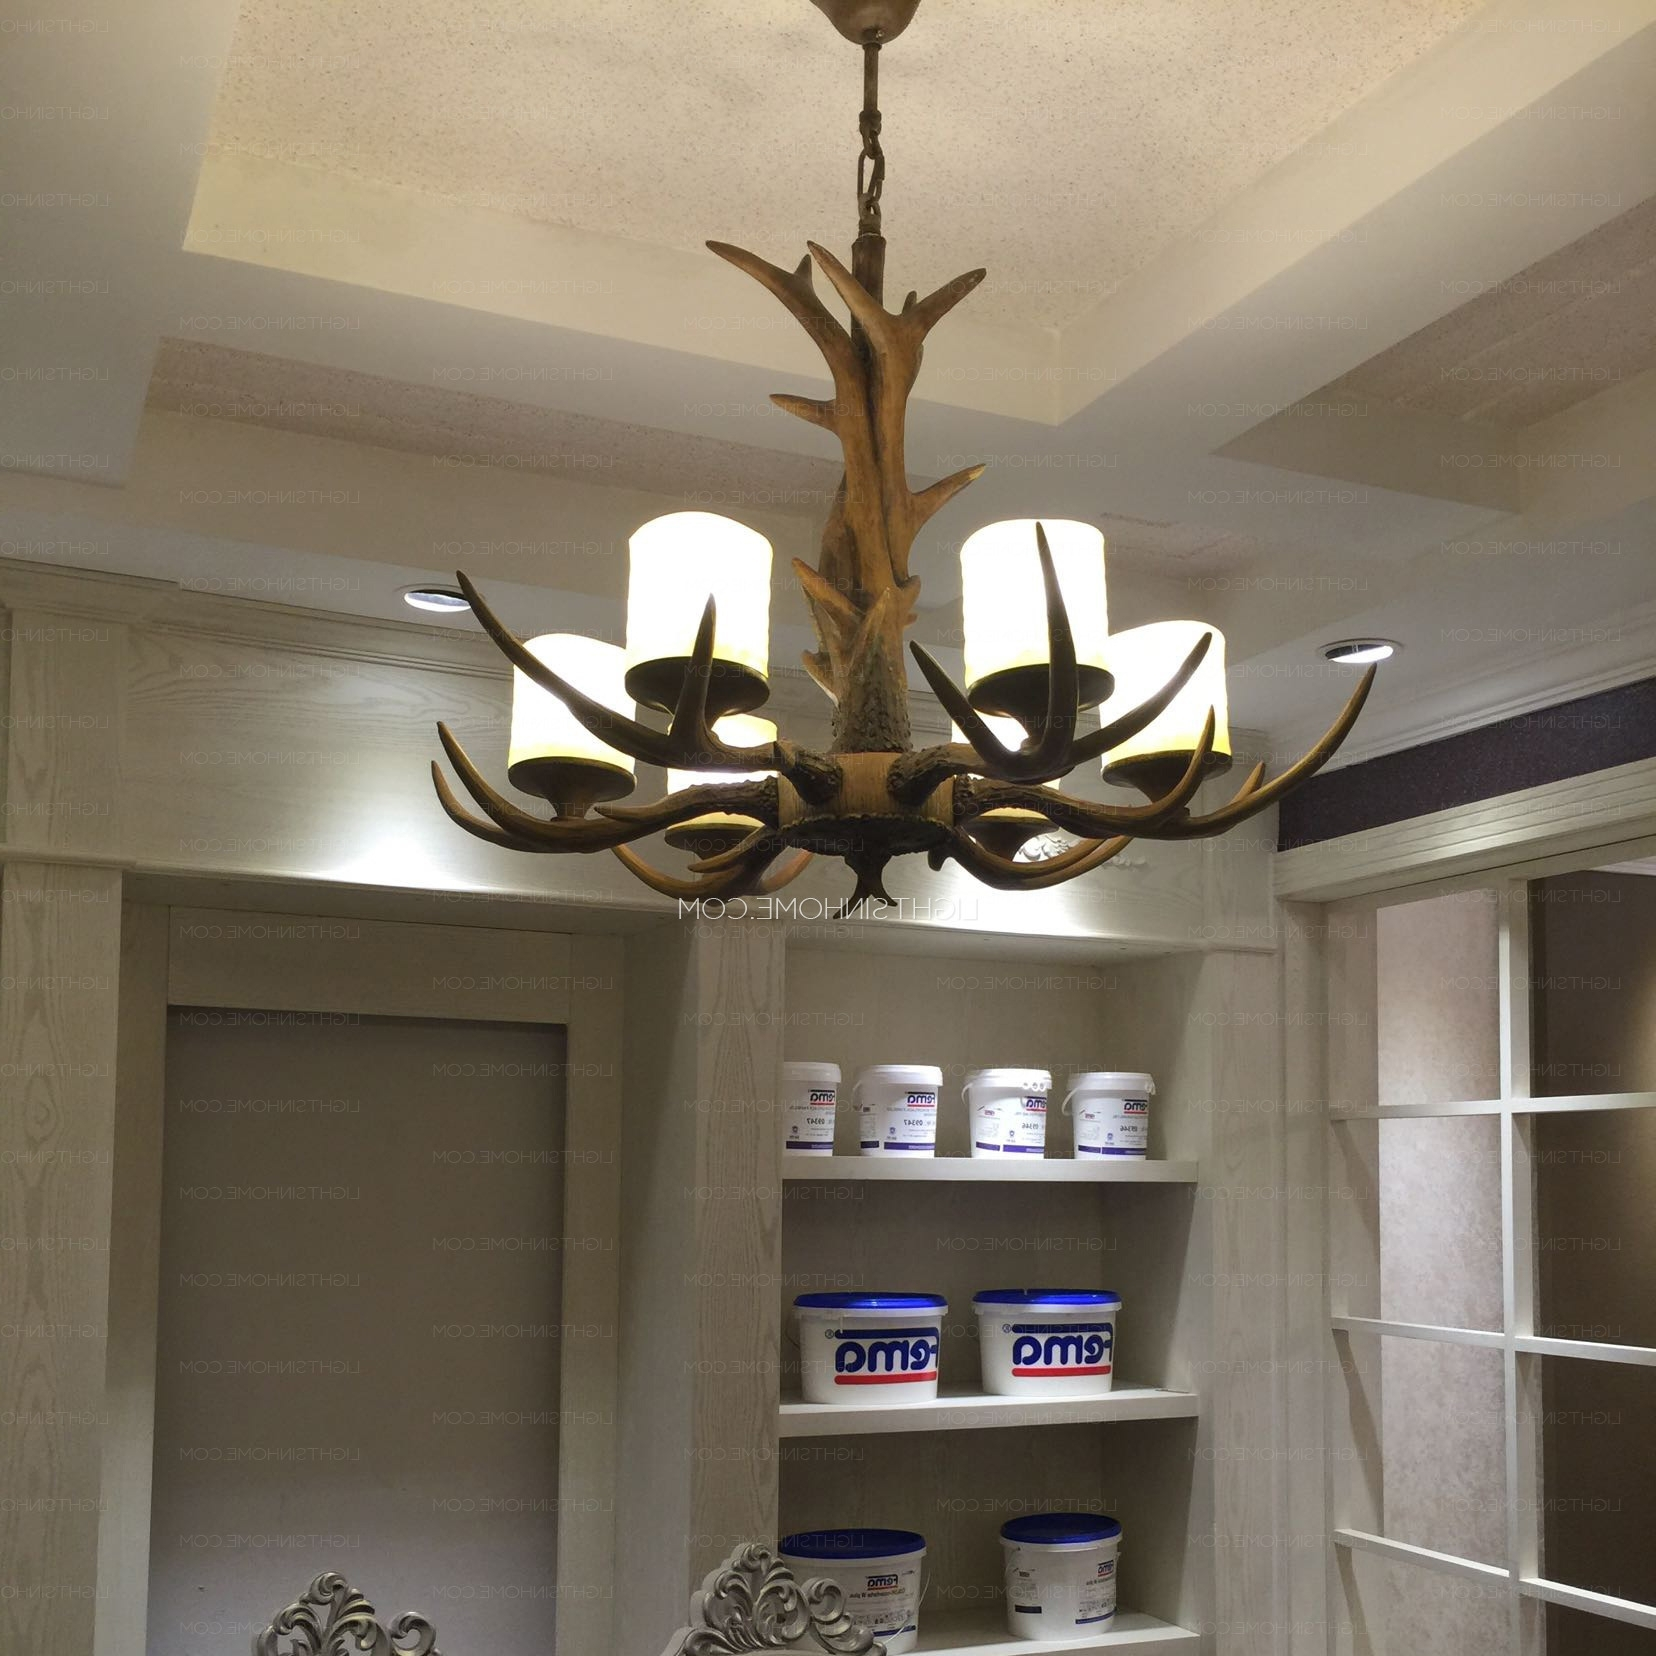 6 Light Resin Cylinder Shade Glass Antler Chandelier Pertaining To Best And Newest Turquoise Antler Chandeliers (View 2 of 20)